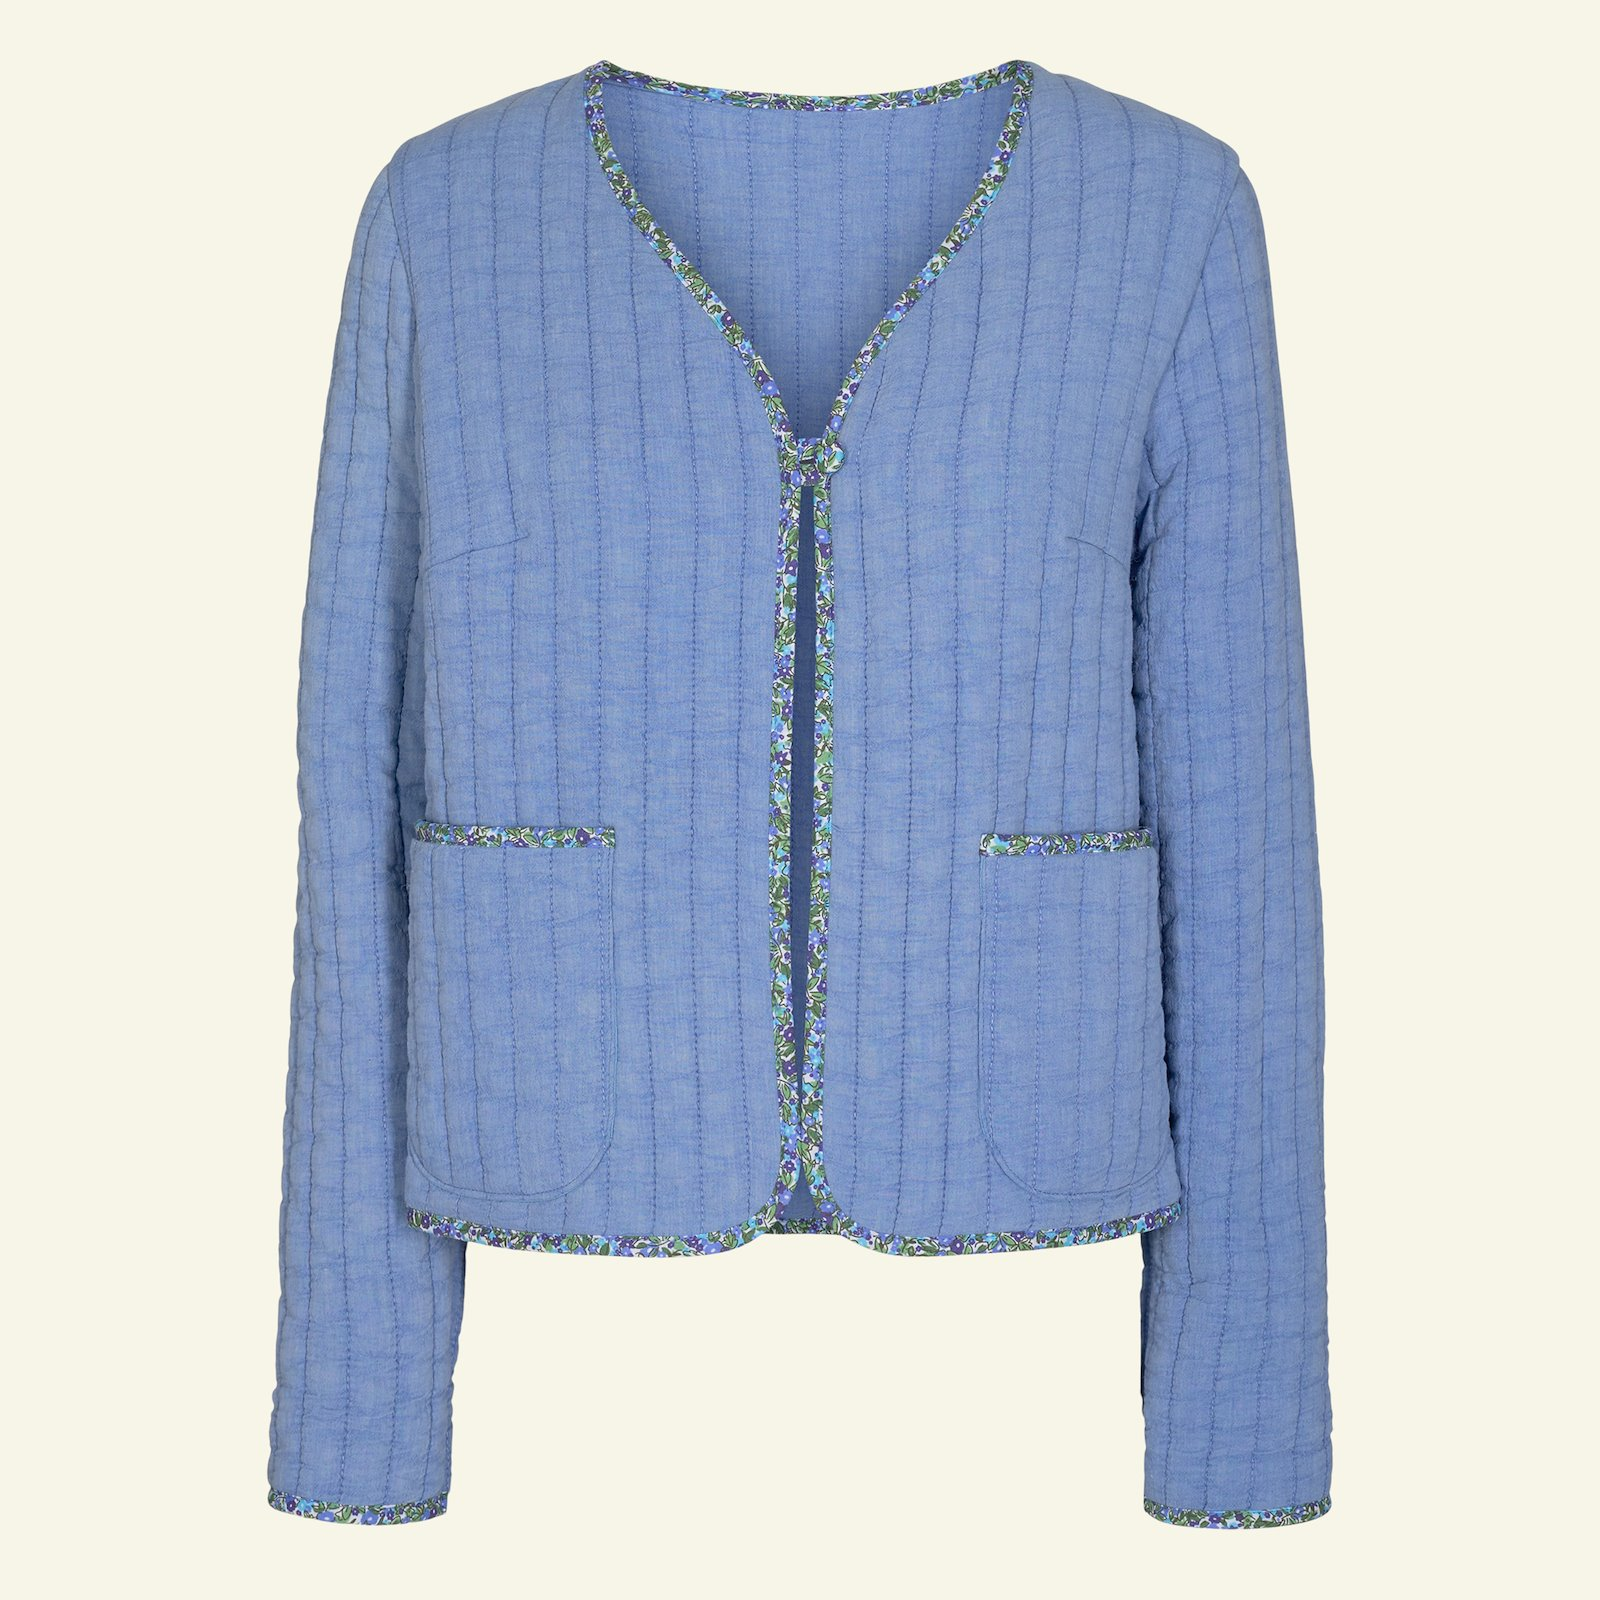 Quilted jacket and waistcoat, 44/16 p24047_920229_64110_43507_sskit